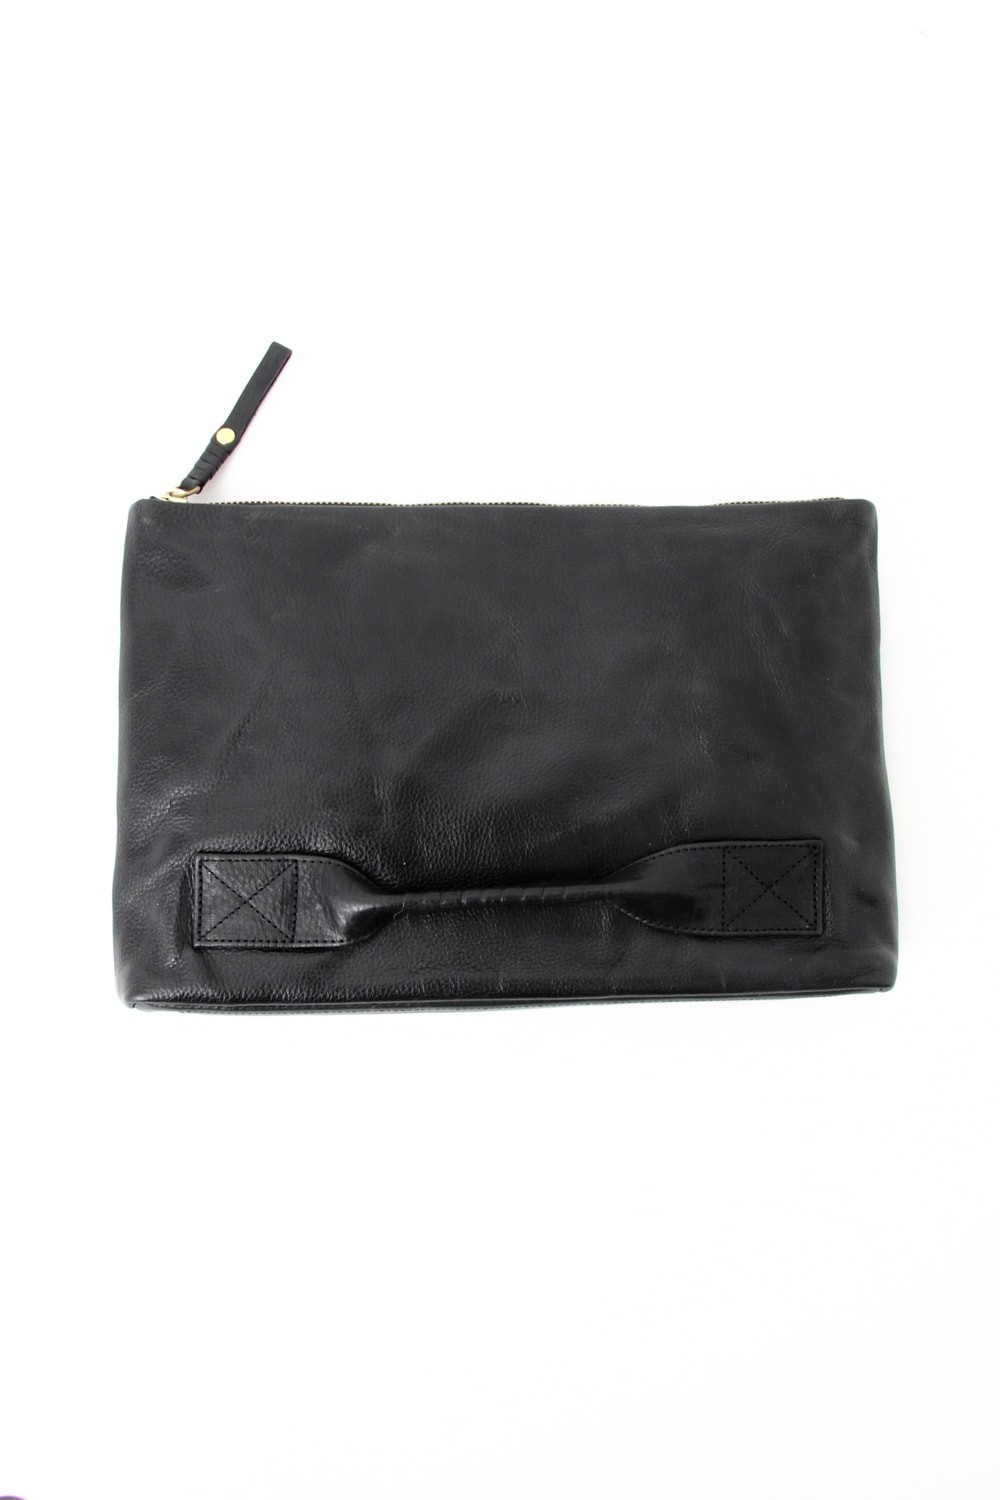 4 handle file - Clutch bag-Black-Free